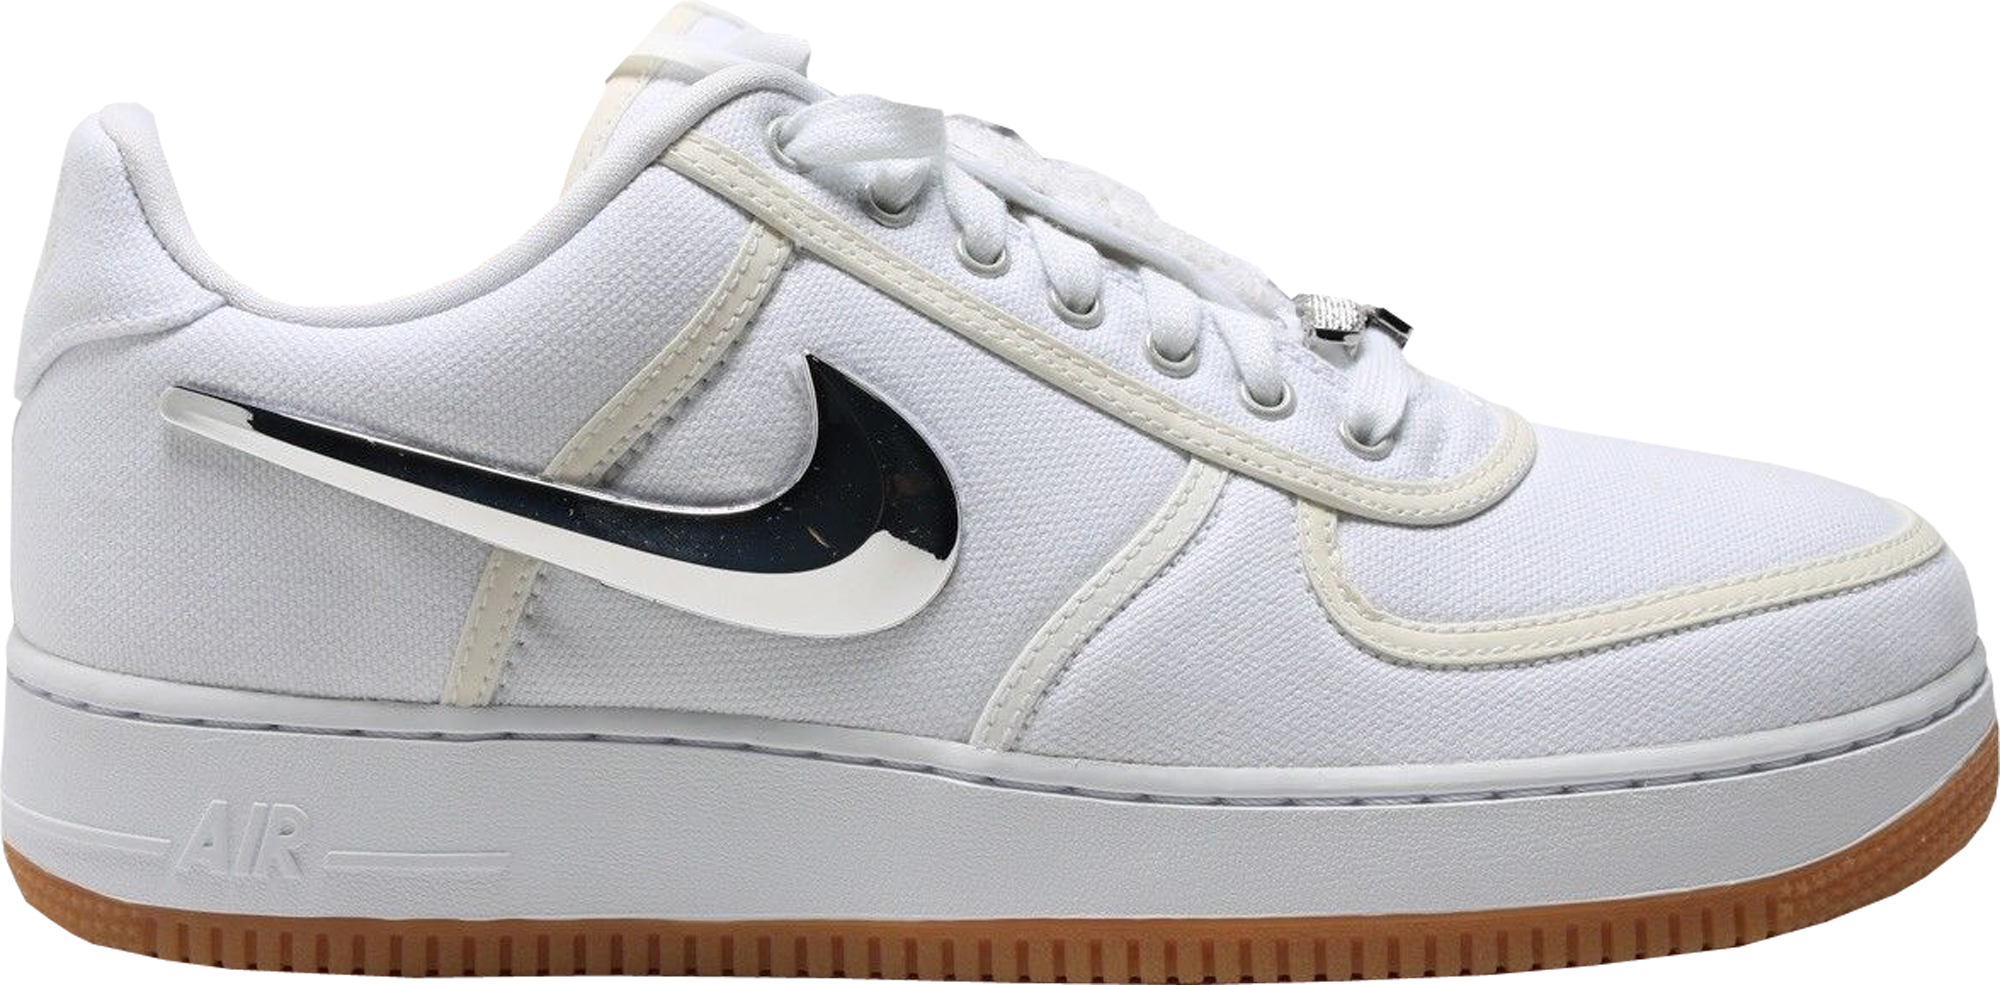 2air force 1 con swoosh nike